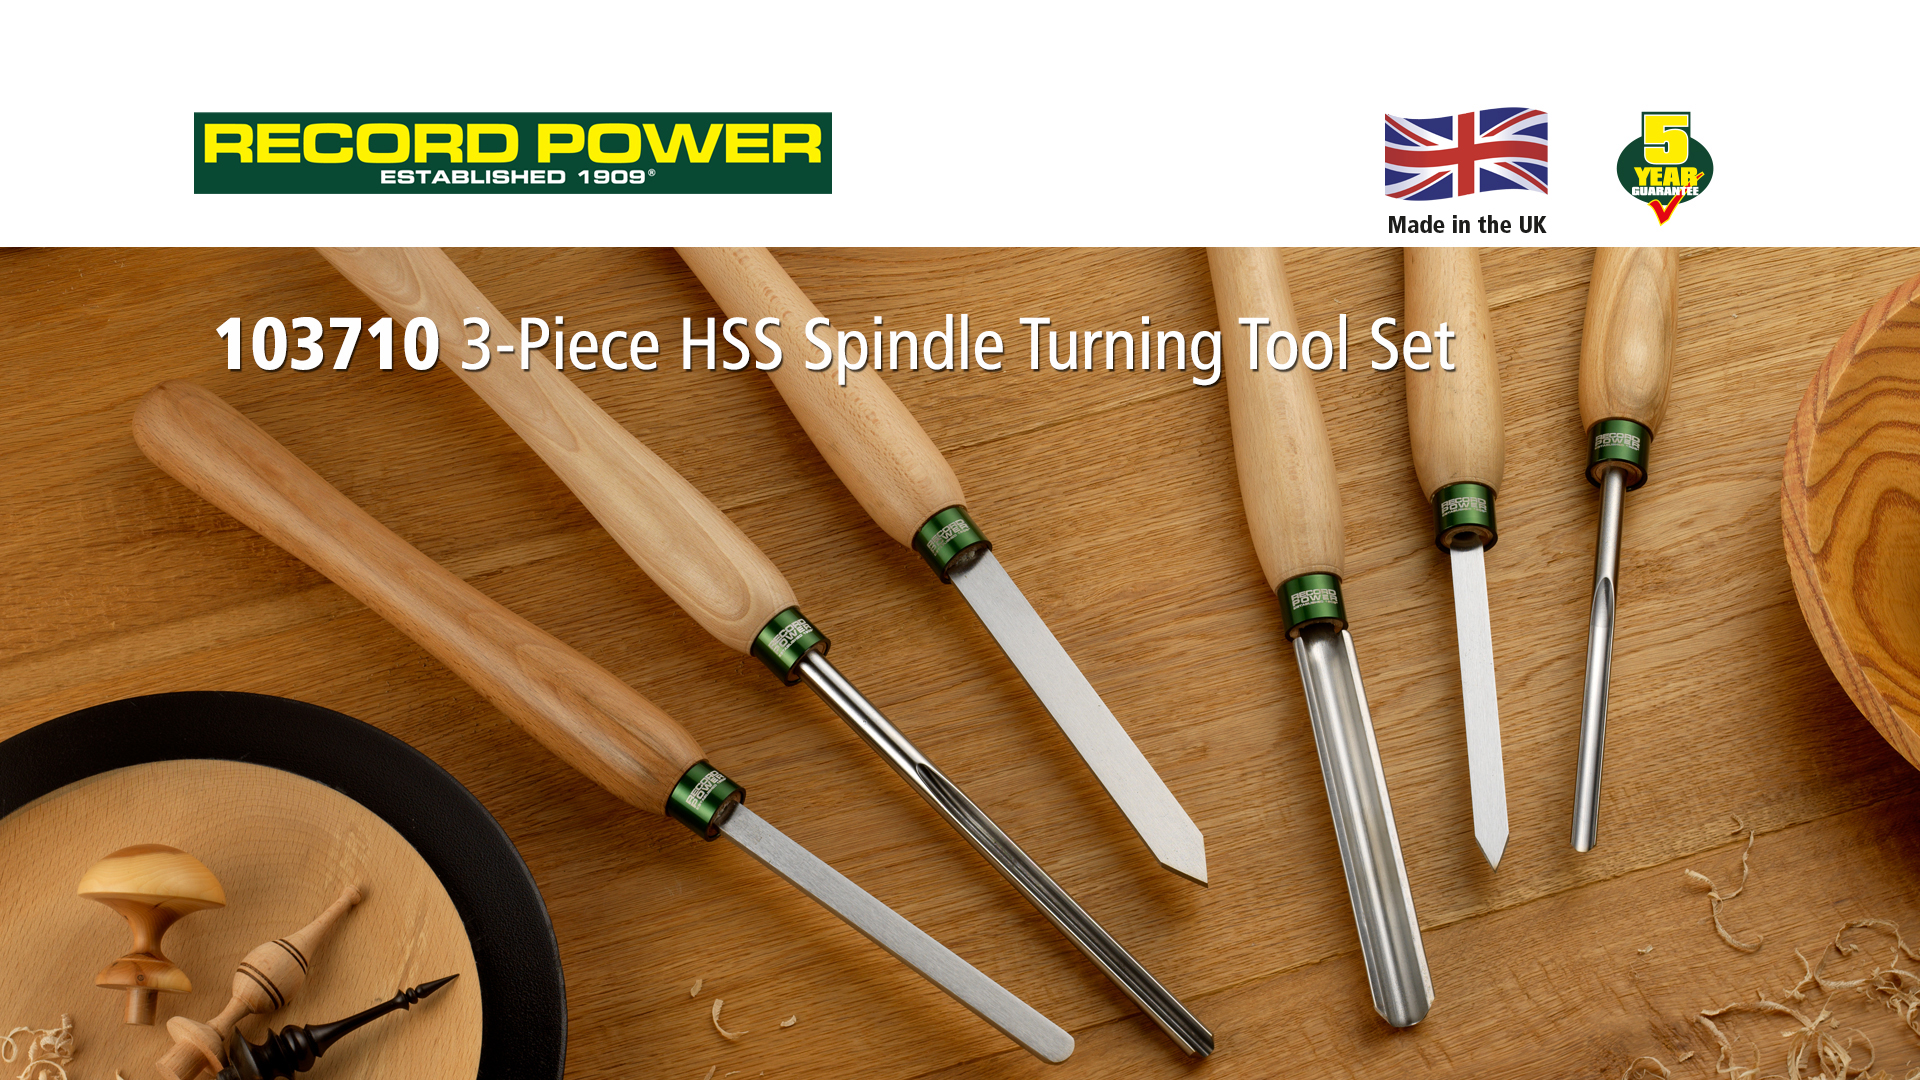 Record Power 103710 3-Piece HSS Spindle Turning Tool Set